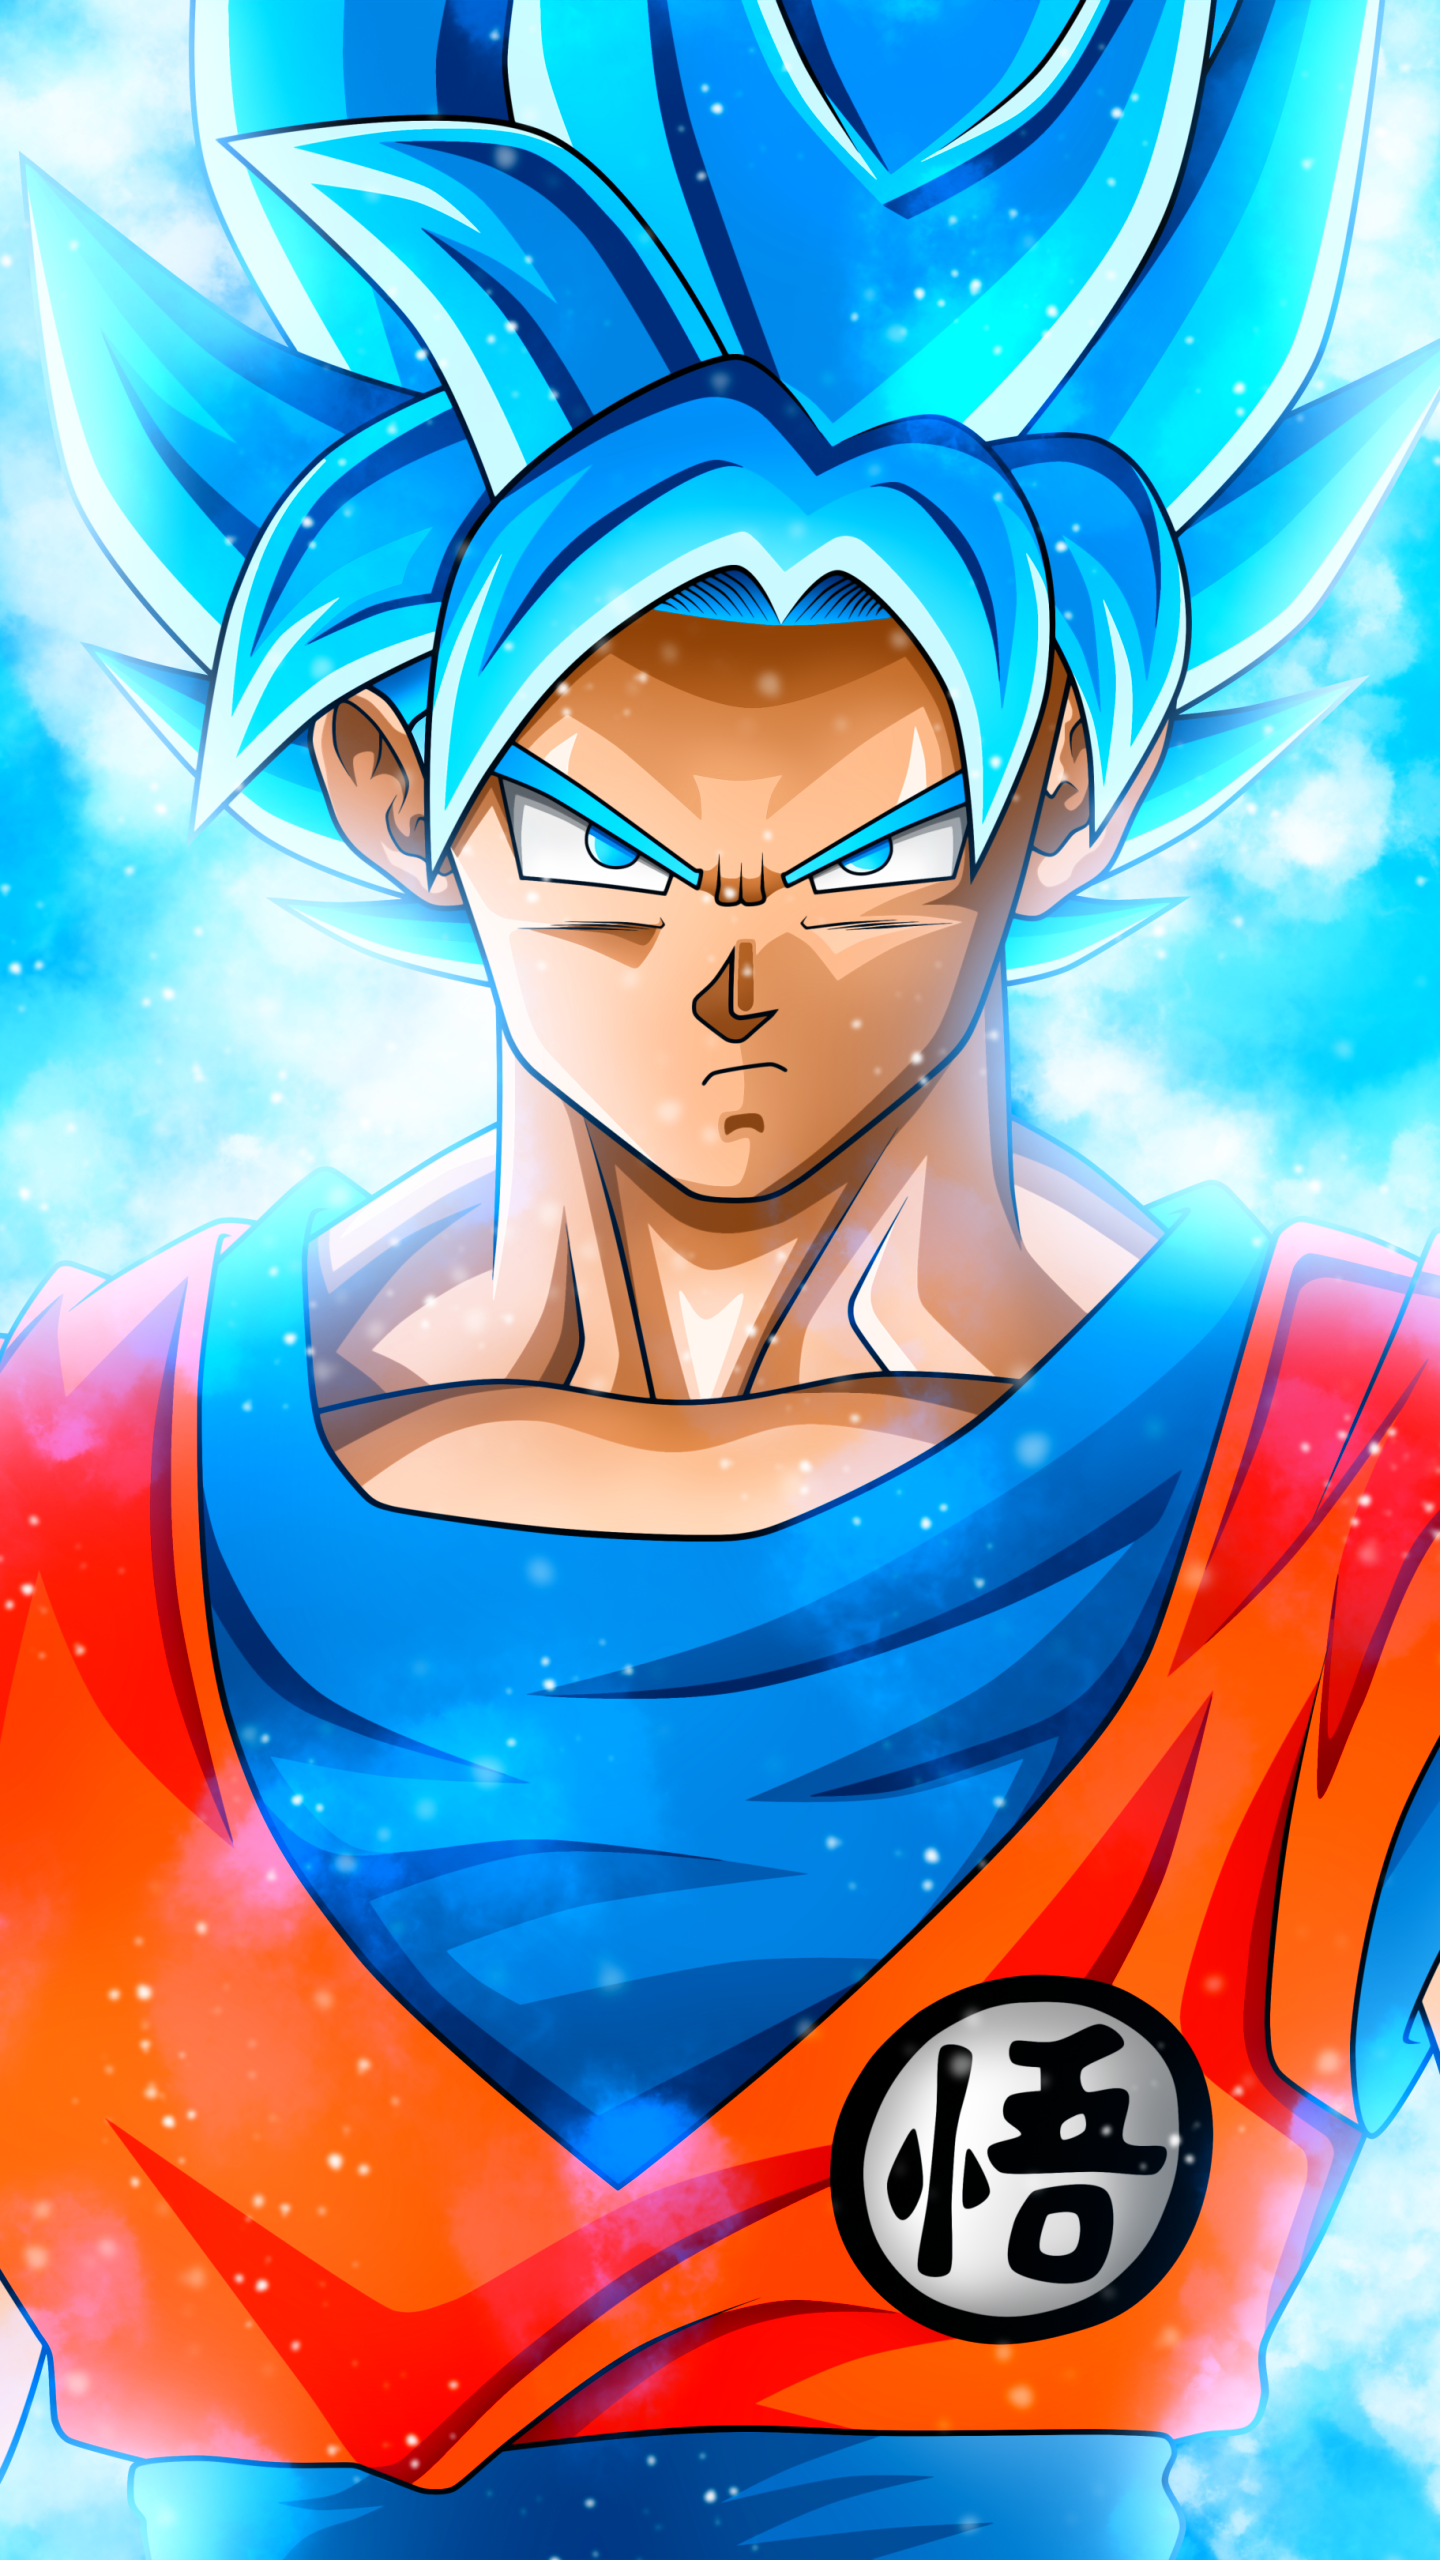 Anime Dragon Ball Super 1080x1920 Wallpaper Id 687492 Mobile Abyss